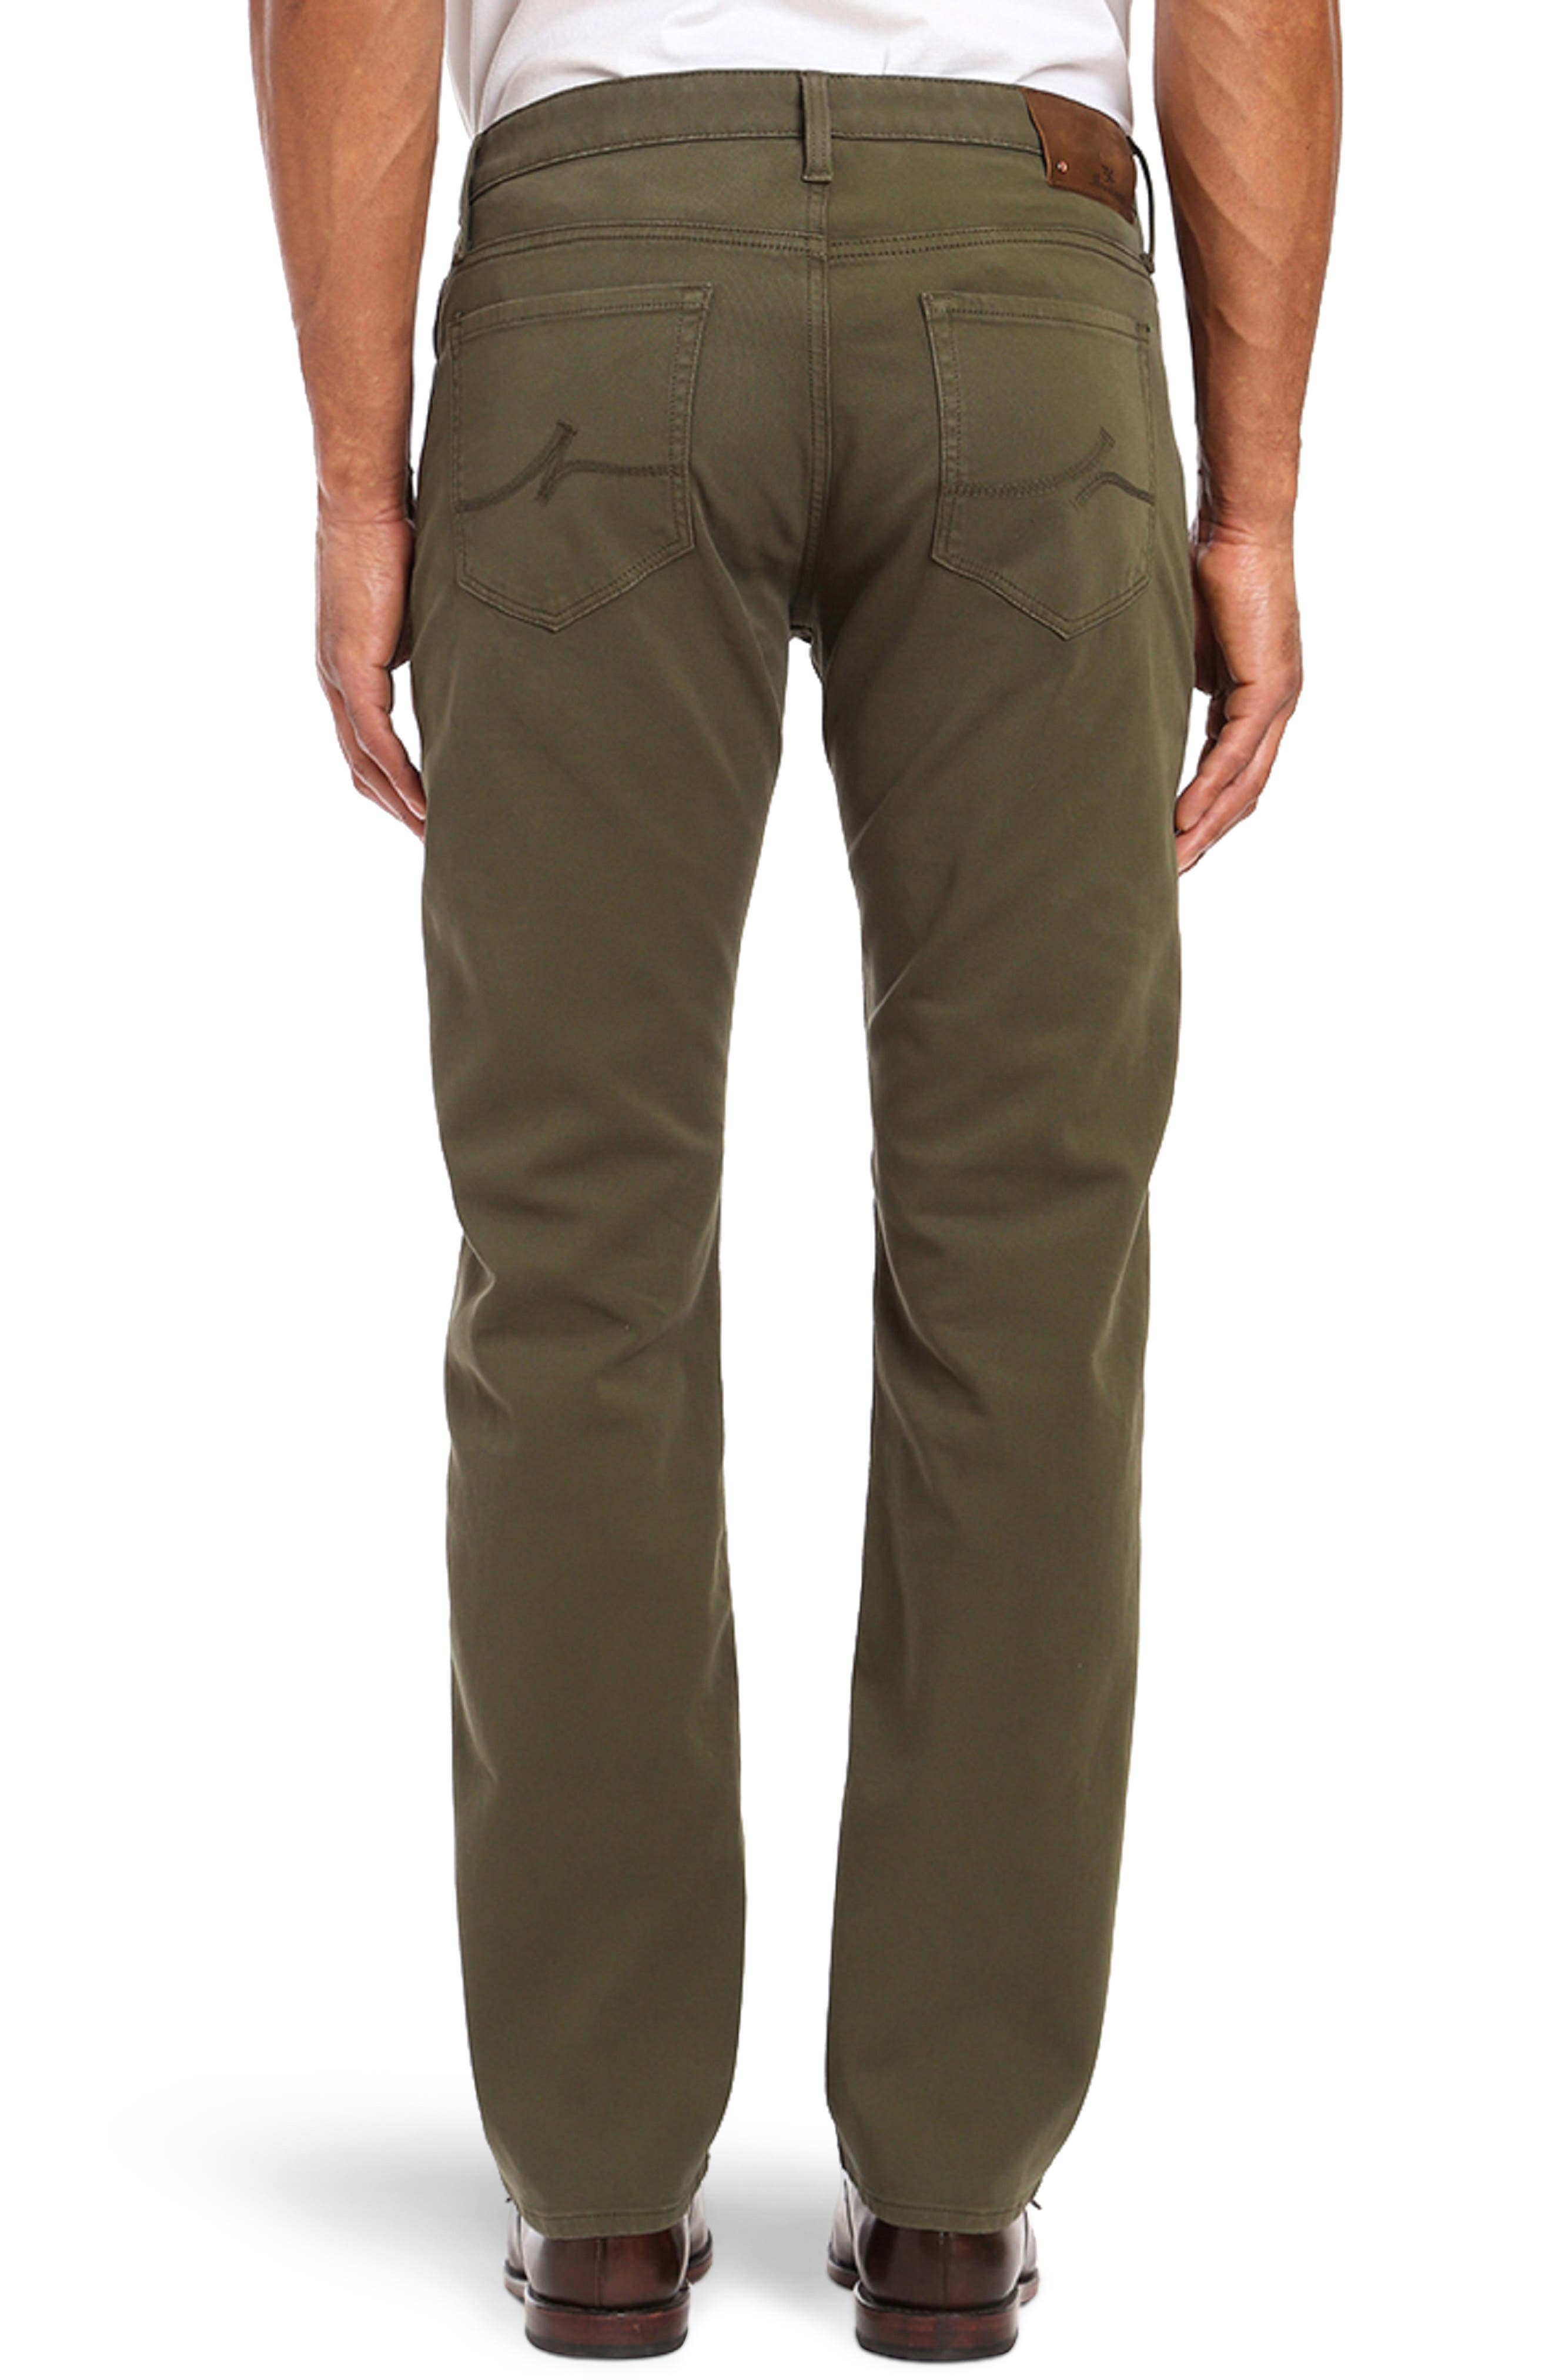 Courage Straight Leg Twill Pants,                             Alternate thumbnail 2, color,                             GREEN FINE TWILL